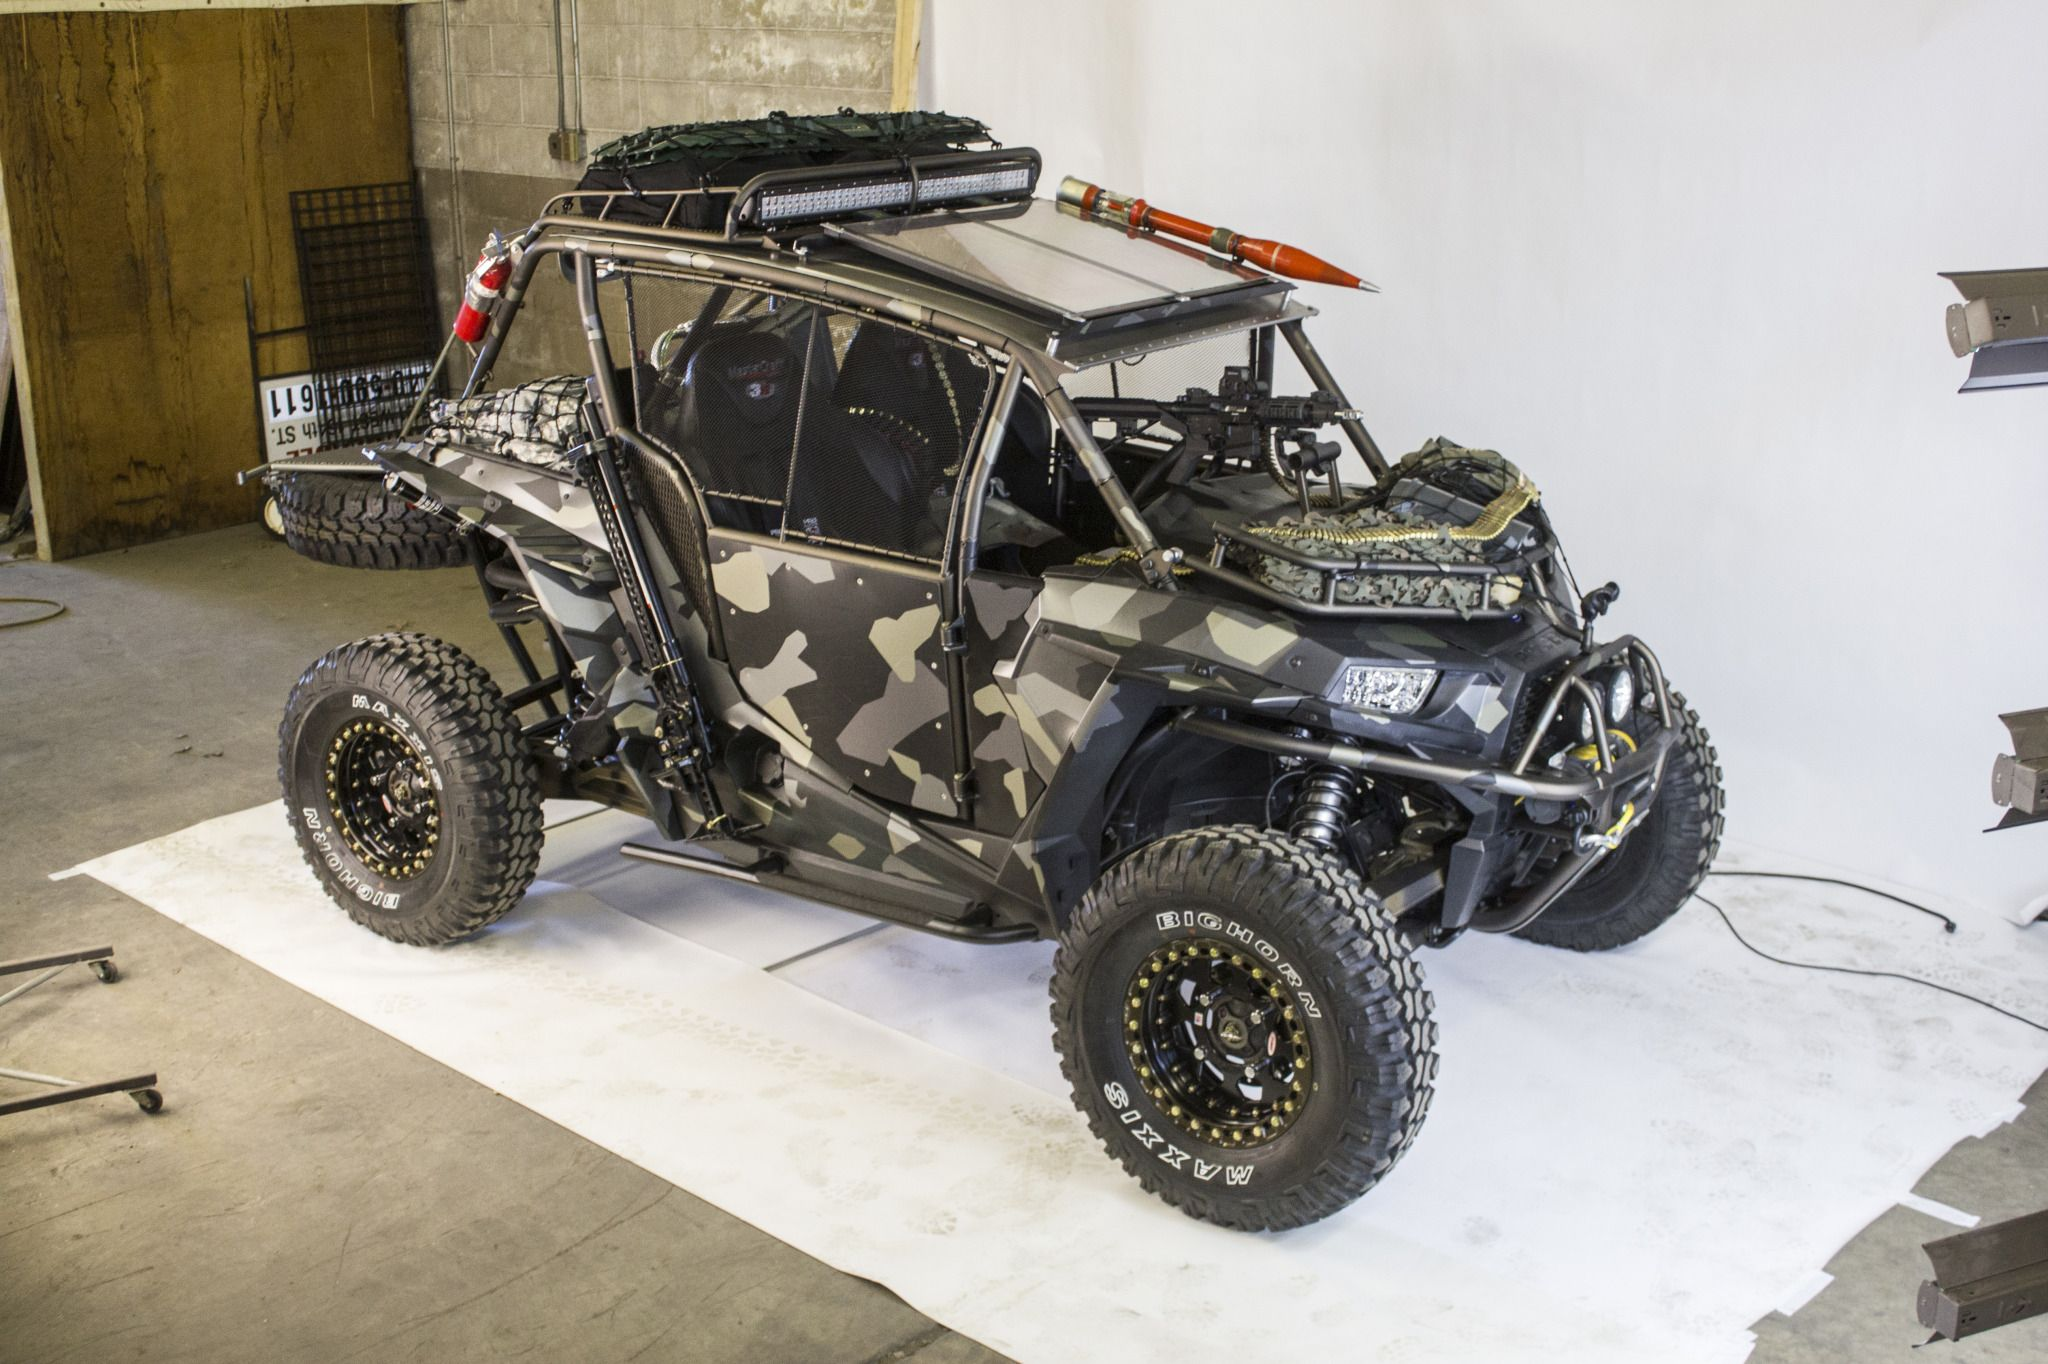 Hmf S Apocalyptic Rzr Rzr Accessories Rzr Polaris Rzr Accessories